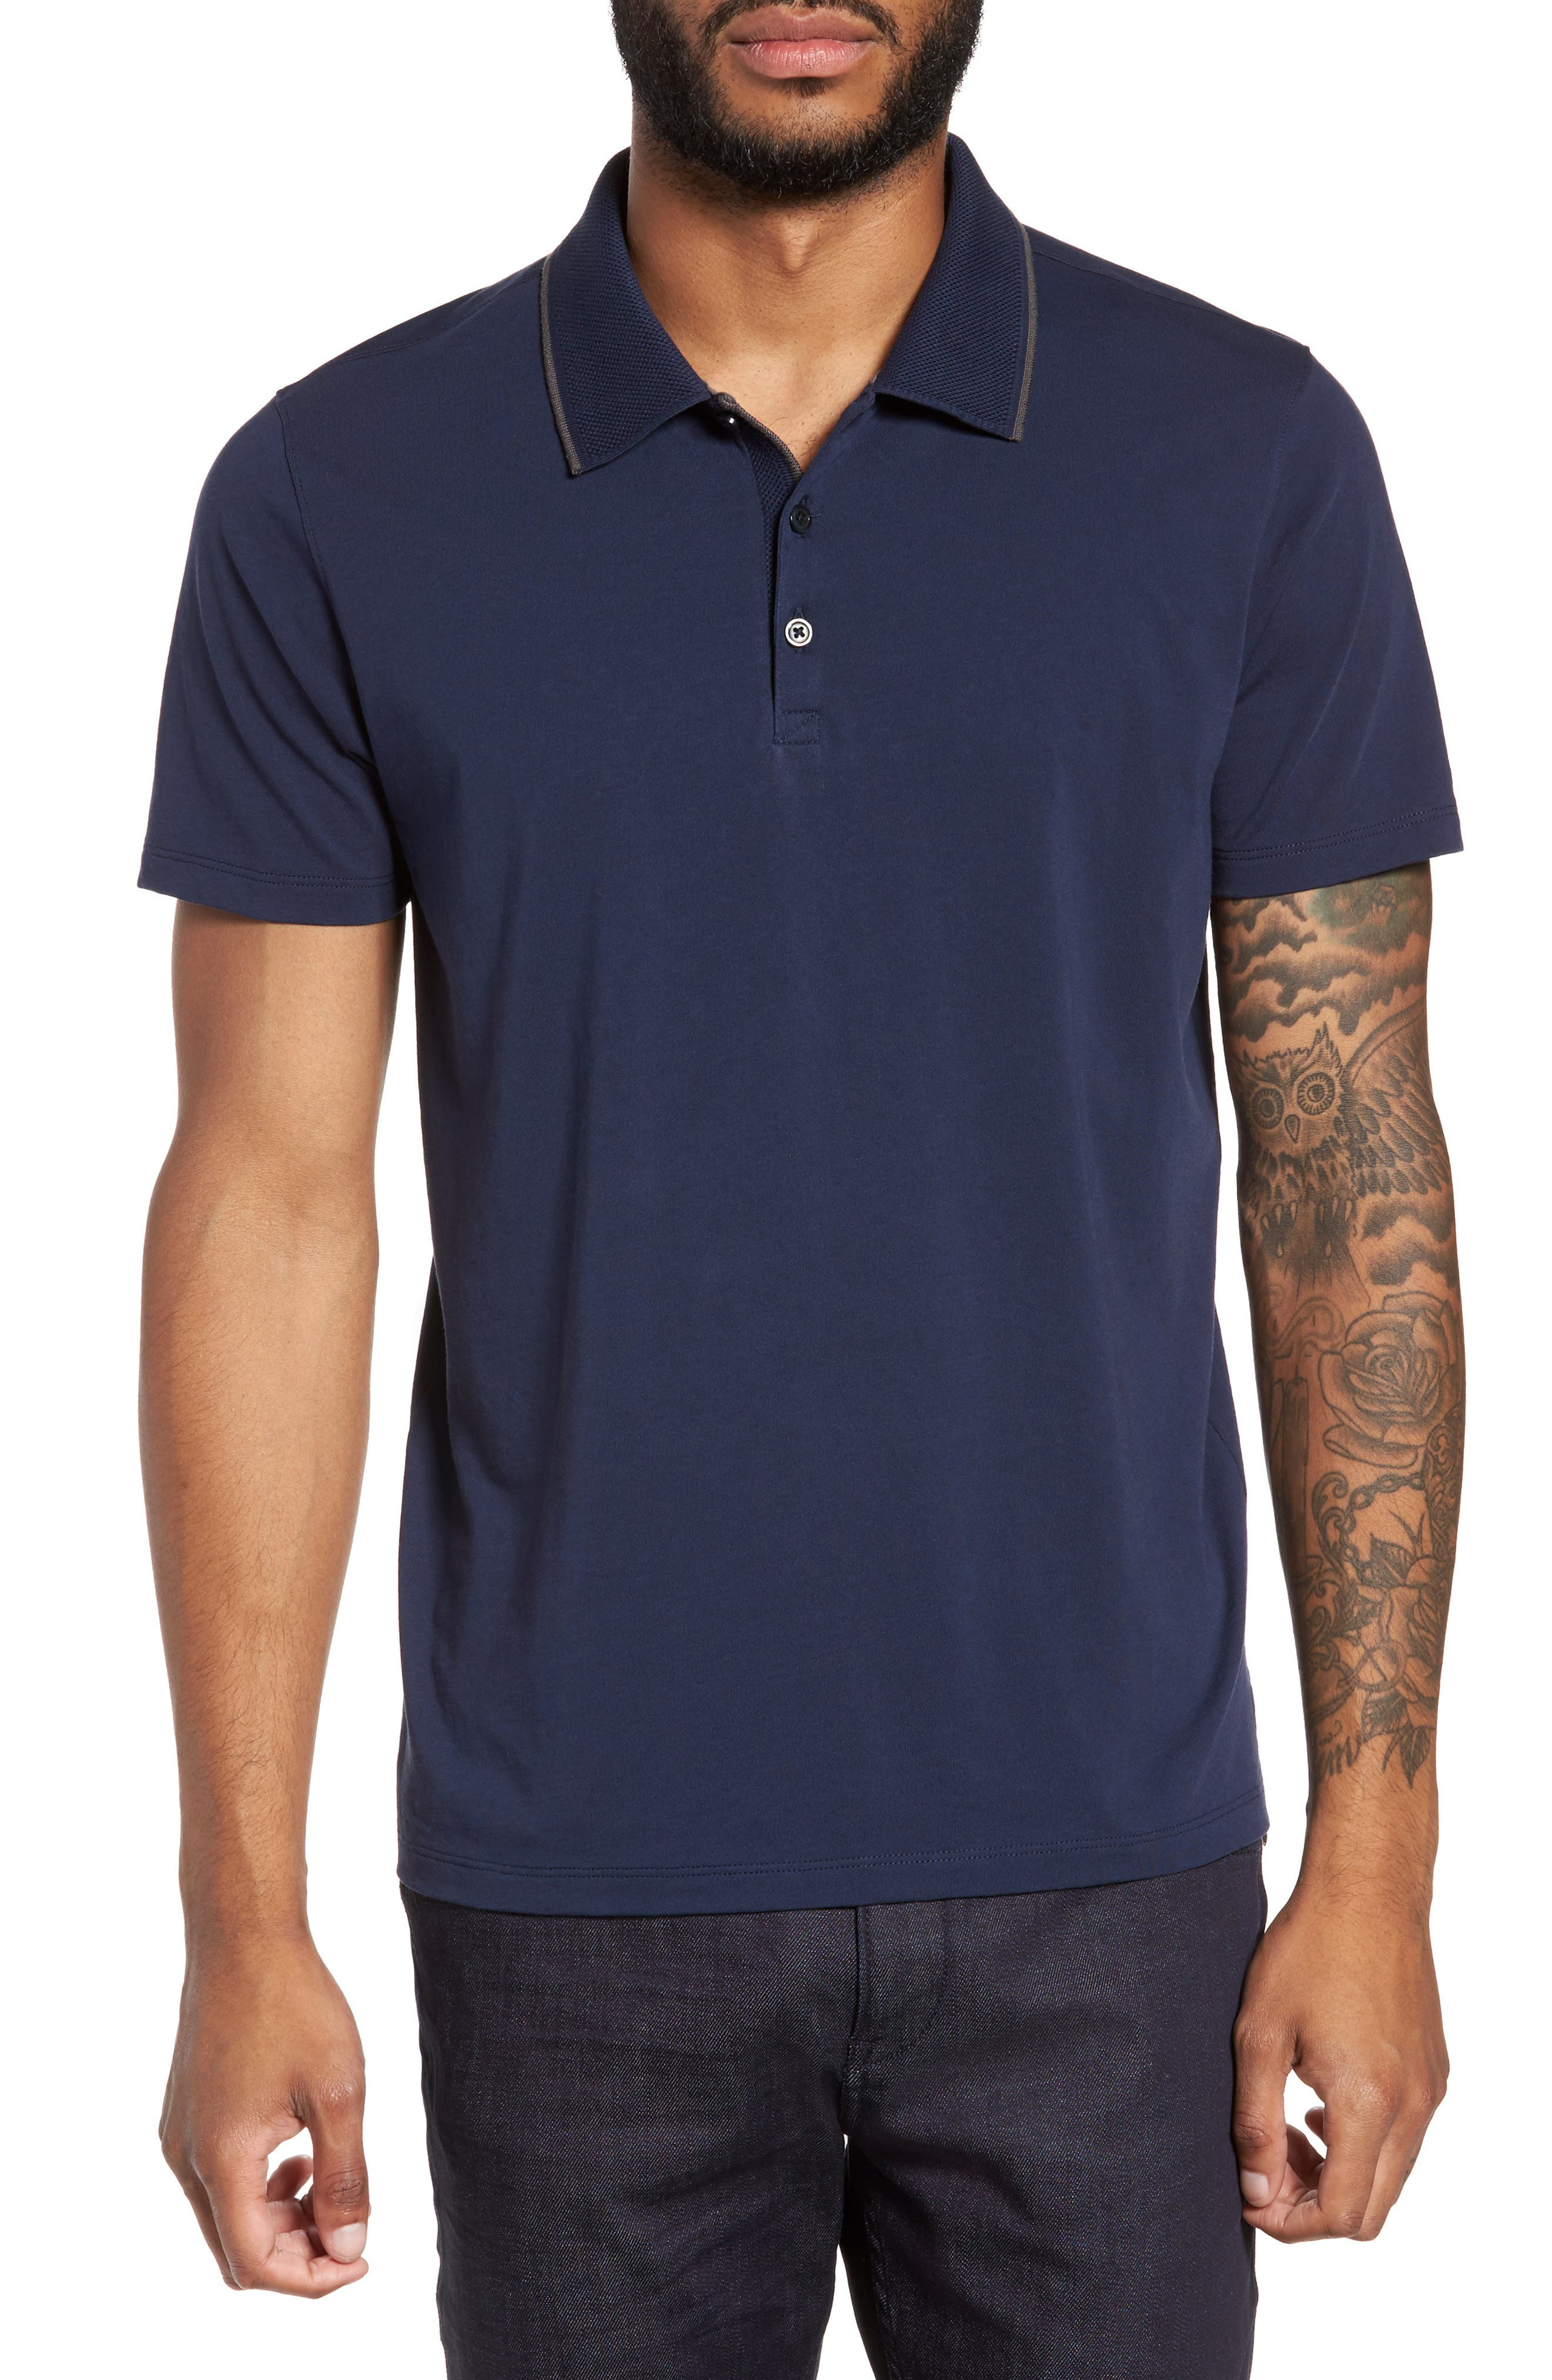 Grindstone Slim Fit Polo,                             Main thumbnail 1, color,                             410